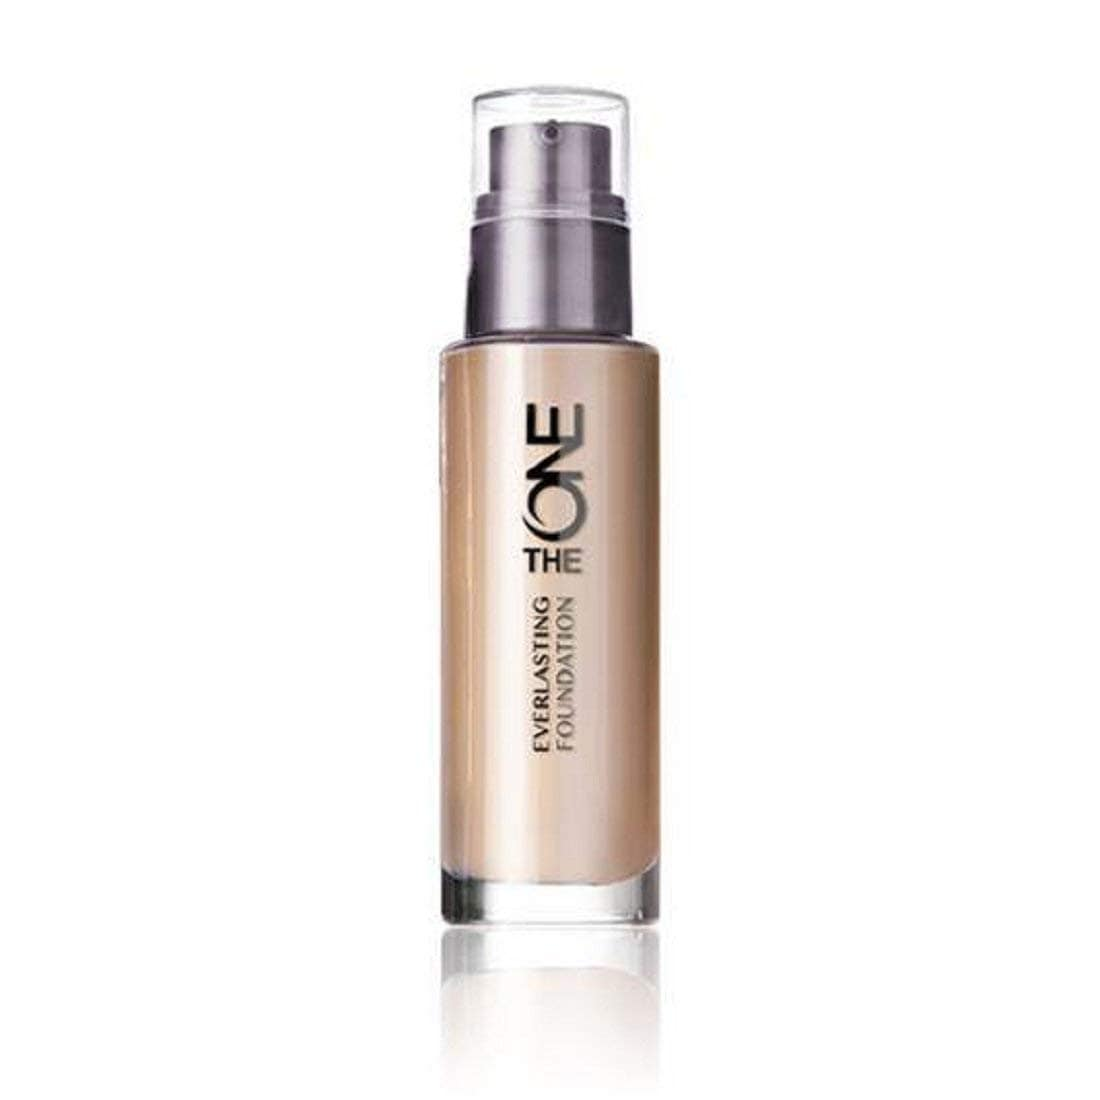 Oriflame The One Everlasting Foundation -30ml (Fair Nude)